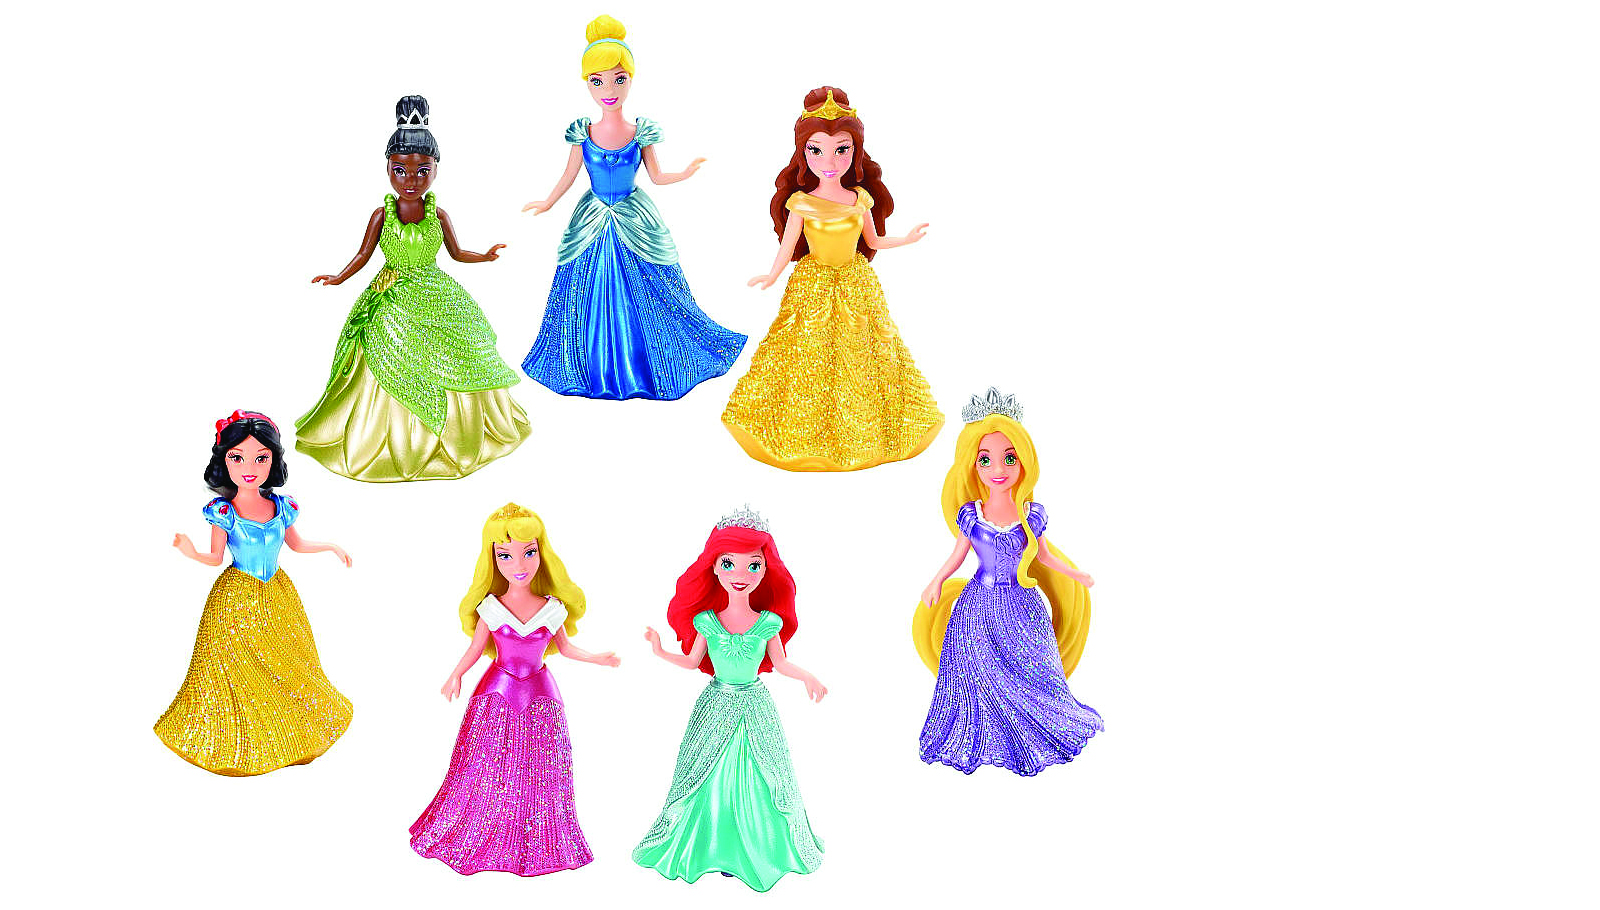 Kids Birthday Gift Guide For Girls 5 To 7 Years Old Bounceu